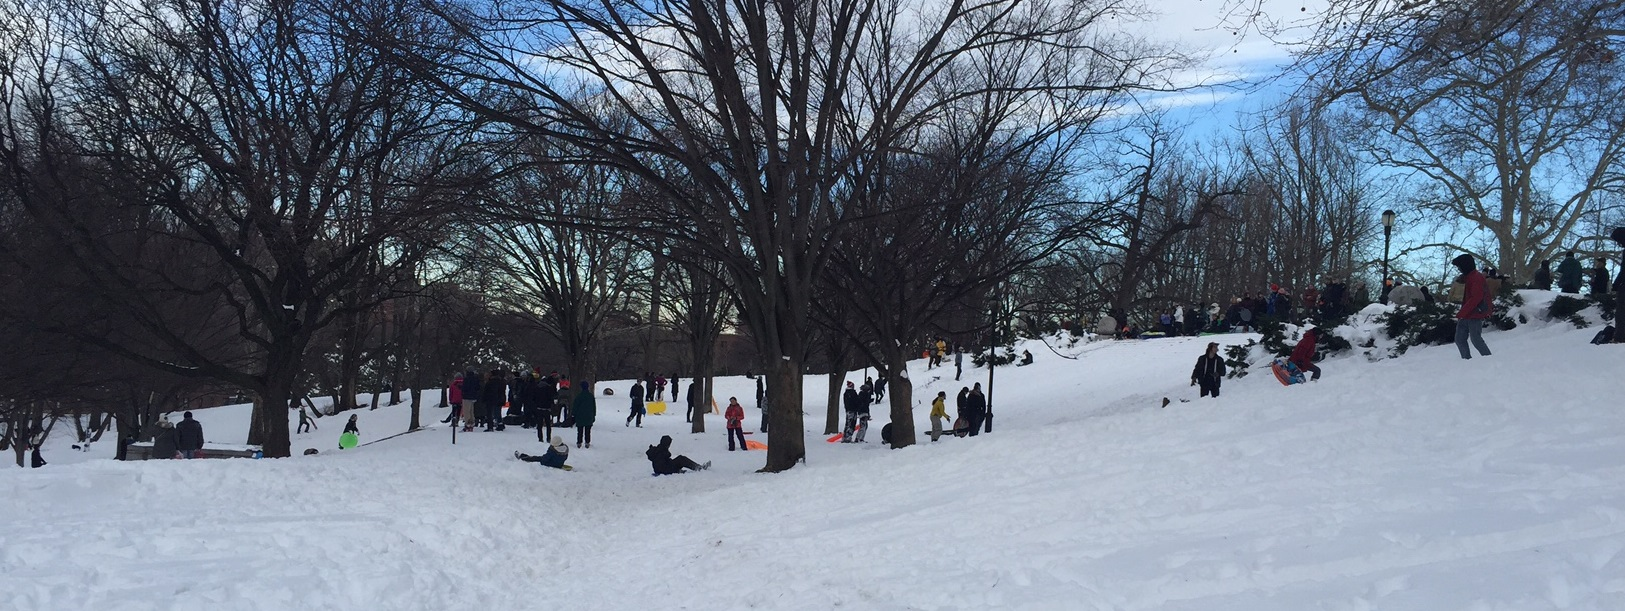 Sledders gathered on the snow-covered Monument steps.